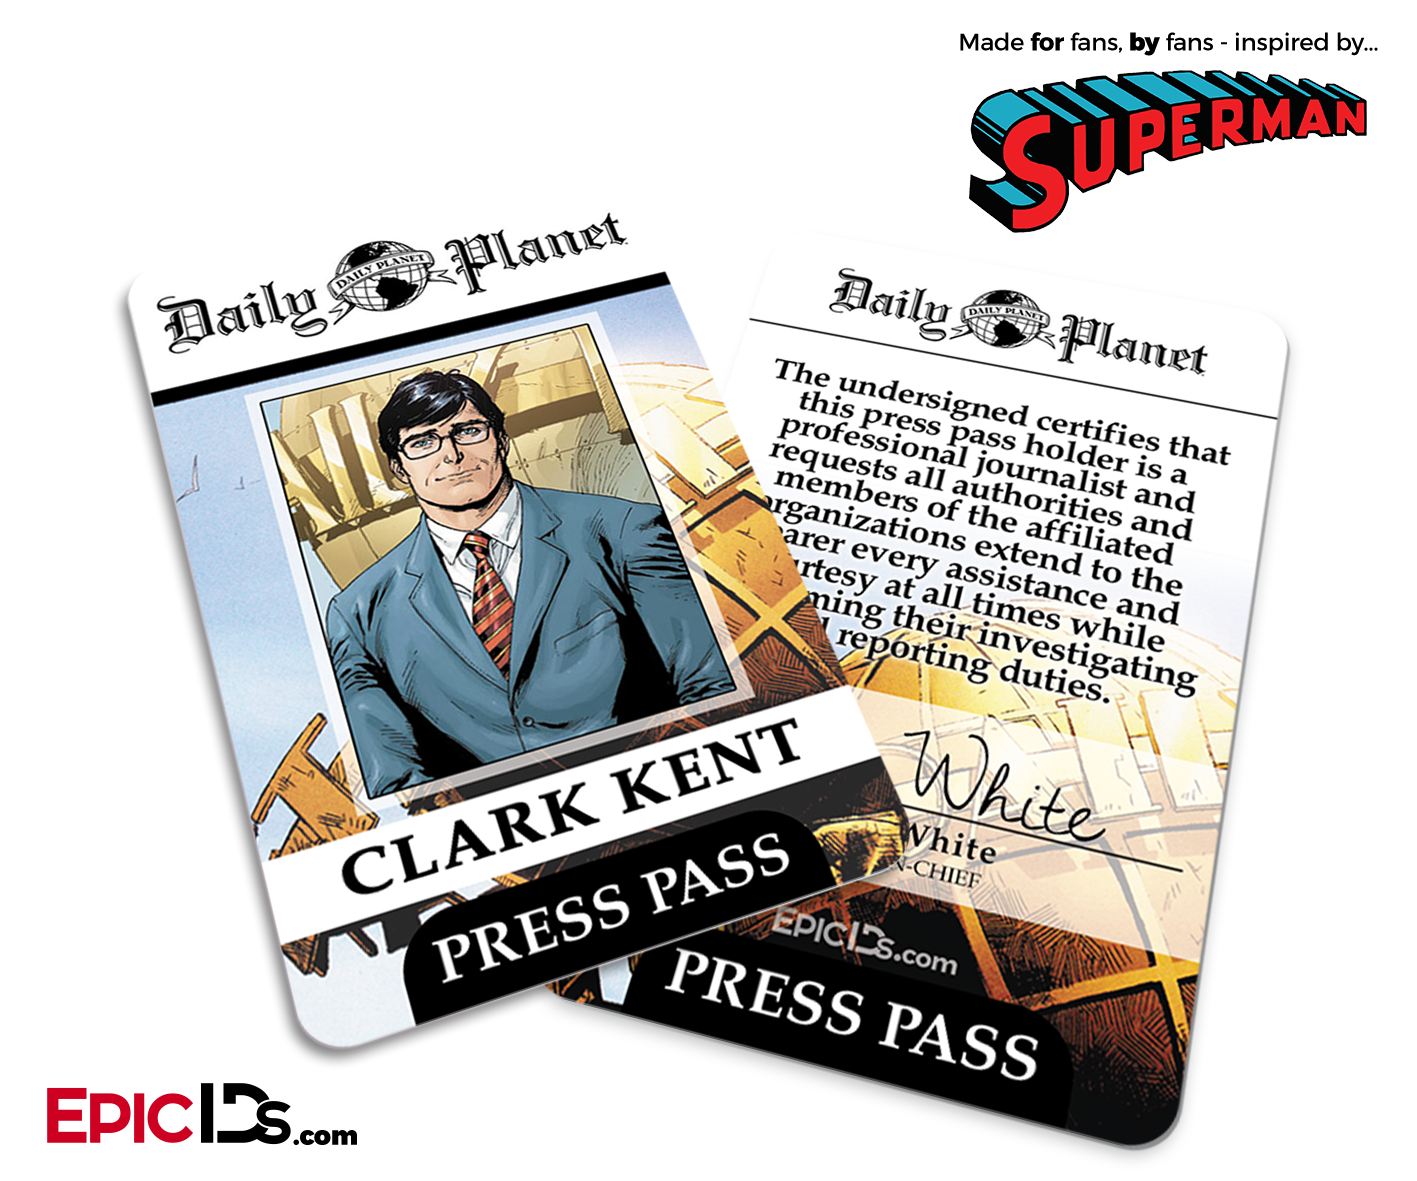 image relating to Lois Lane Press Pass Printable referred to as Superman Clic Comedian Everyday Globe Drive P Cosplay Identification Badge - Clark Kent